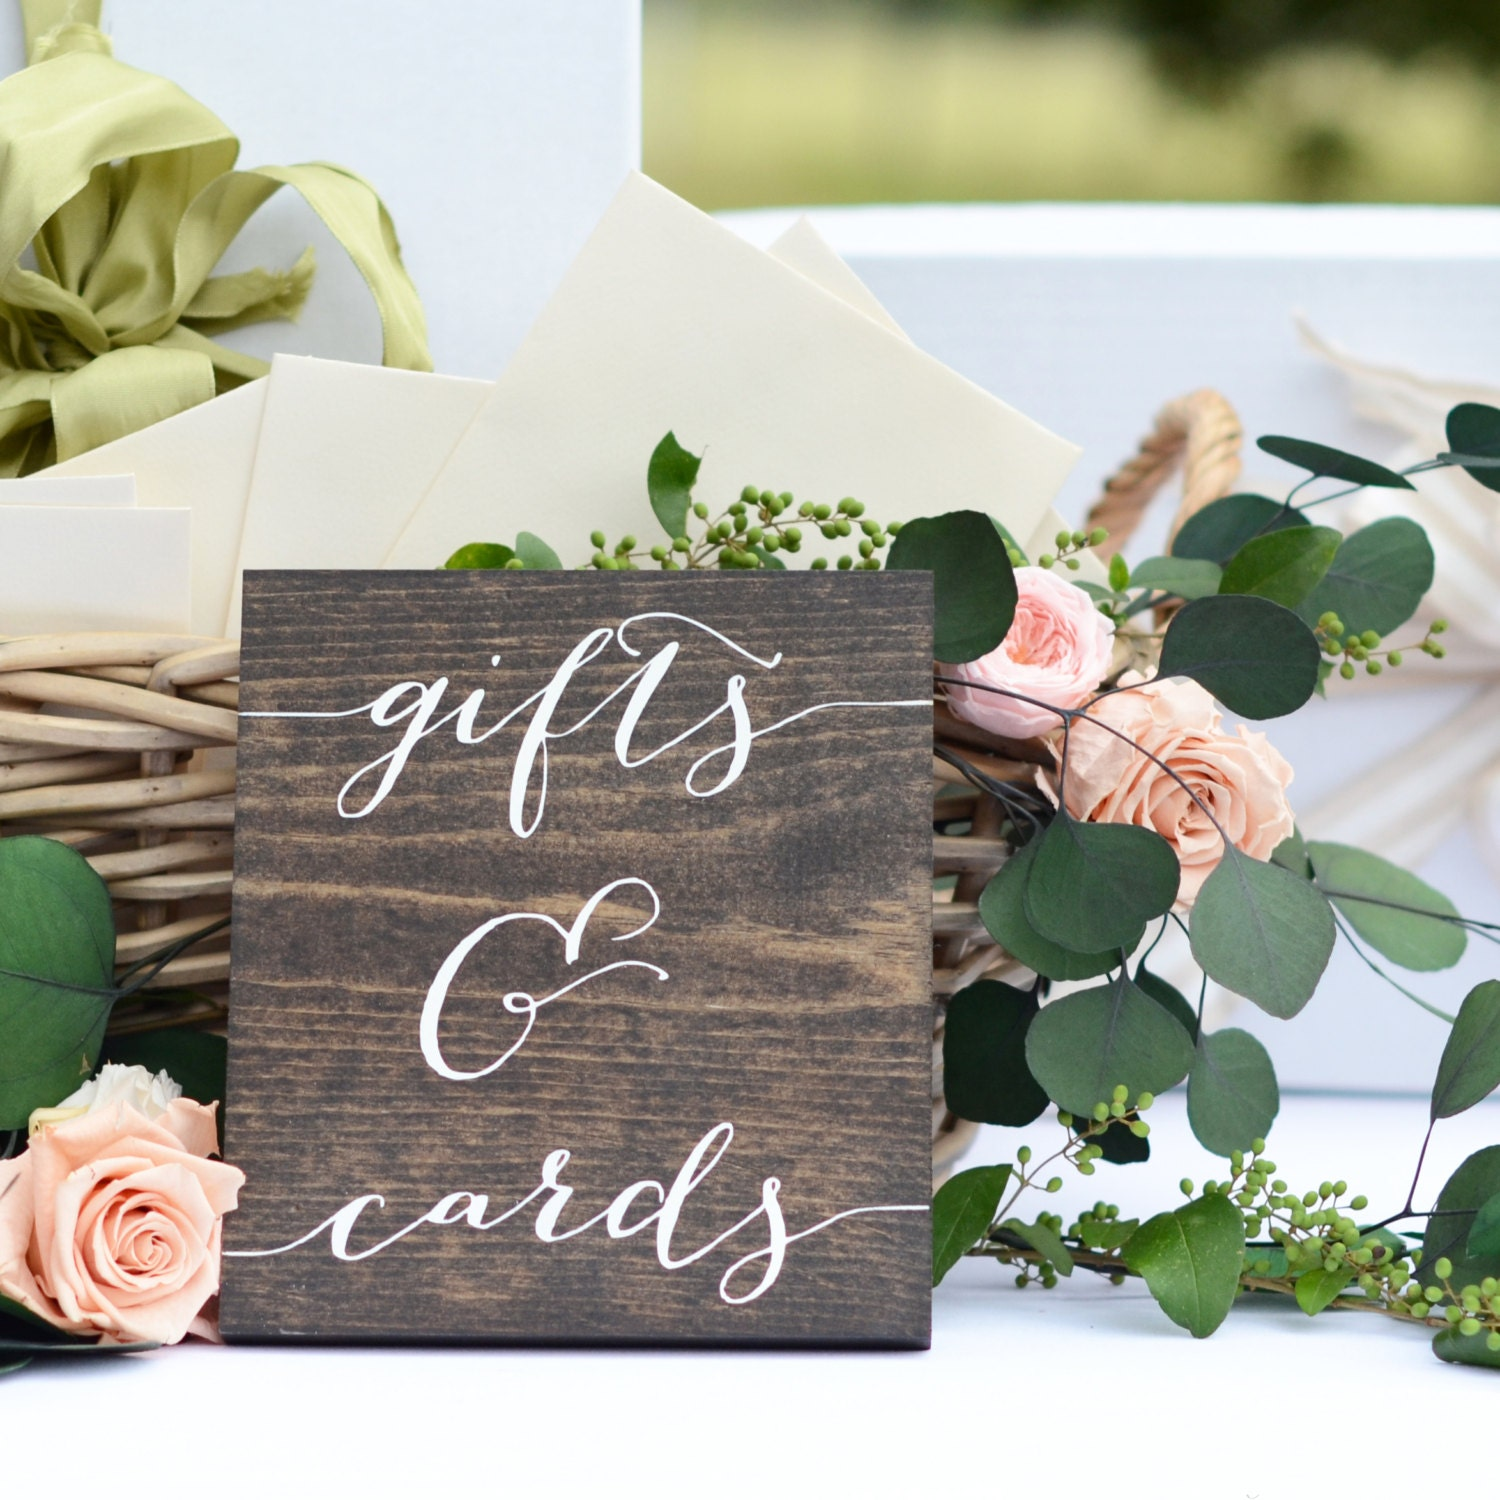 Gifts and cards sign wedding gift table sign gifts sign for Table 6 gift card